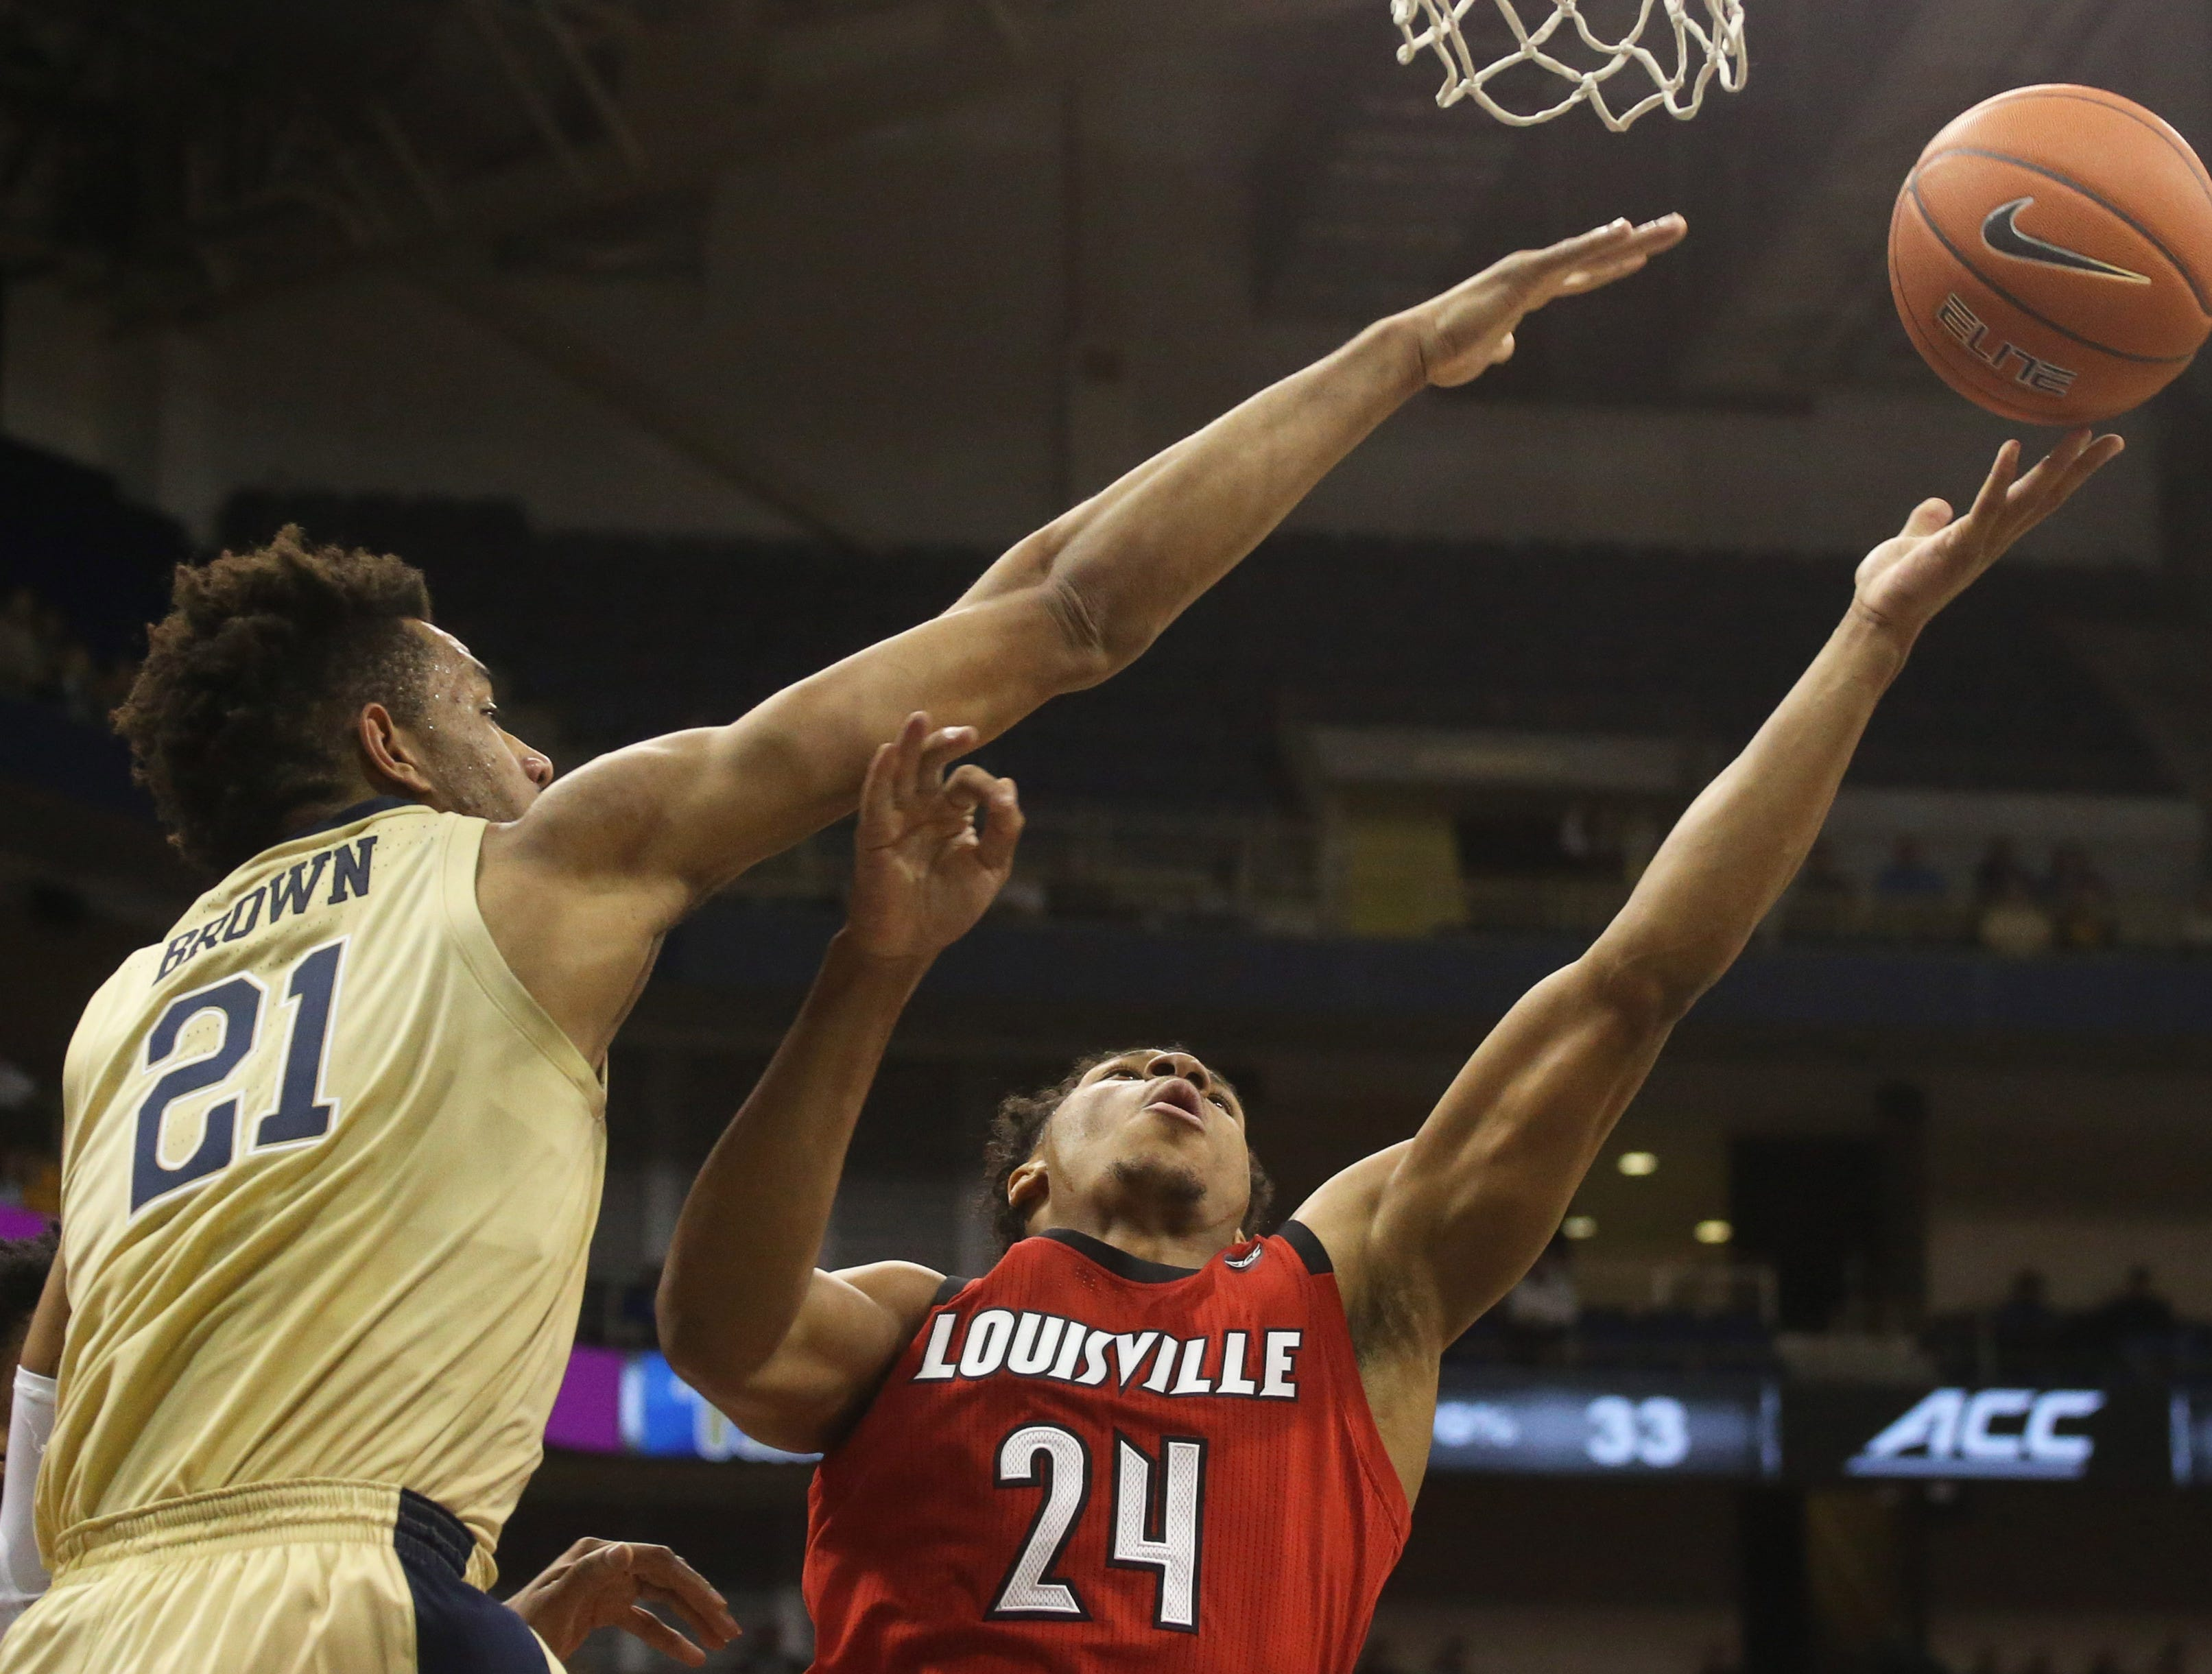 Jan 9, 2019; Pittsburgh, PA, USA;  Pittsburgh Panthers forward Terrell Brown (21) defends Louisville Cardinals forward Dwayne Sutton (24) during the first half at the Petersen Events Center.